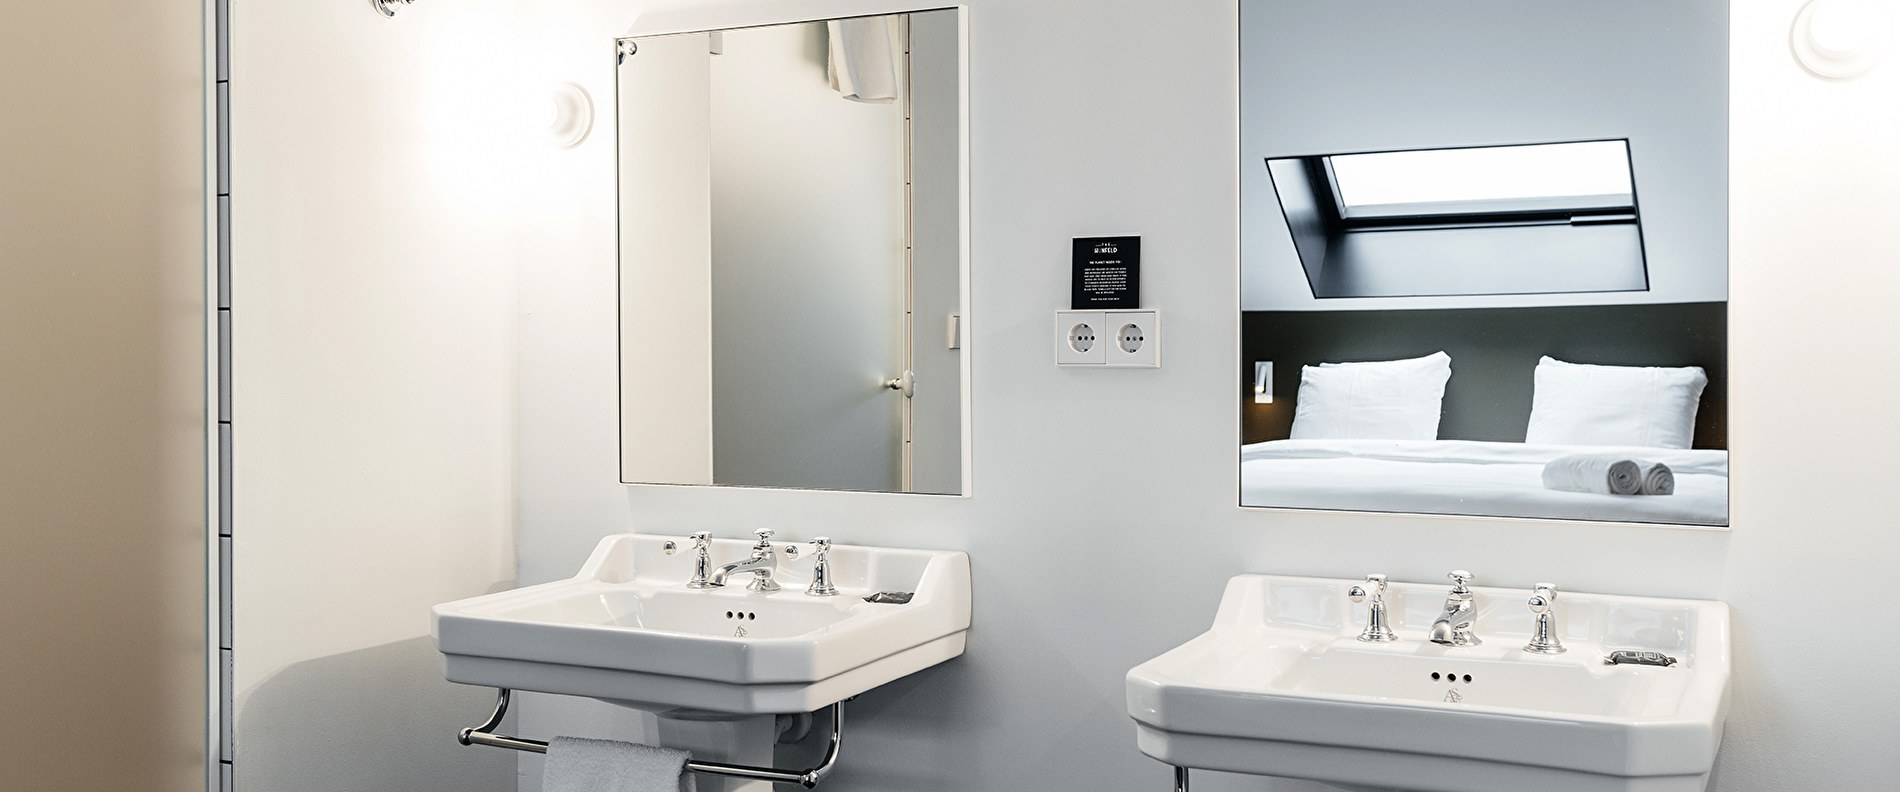 LARGE ROOM - THE HUNFELD (only one of our large rooms has these great double sinks)